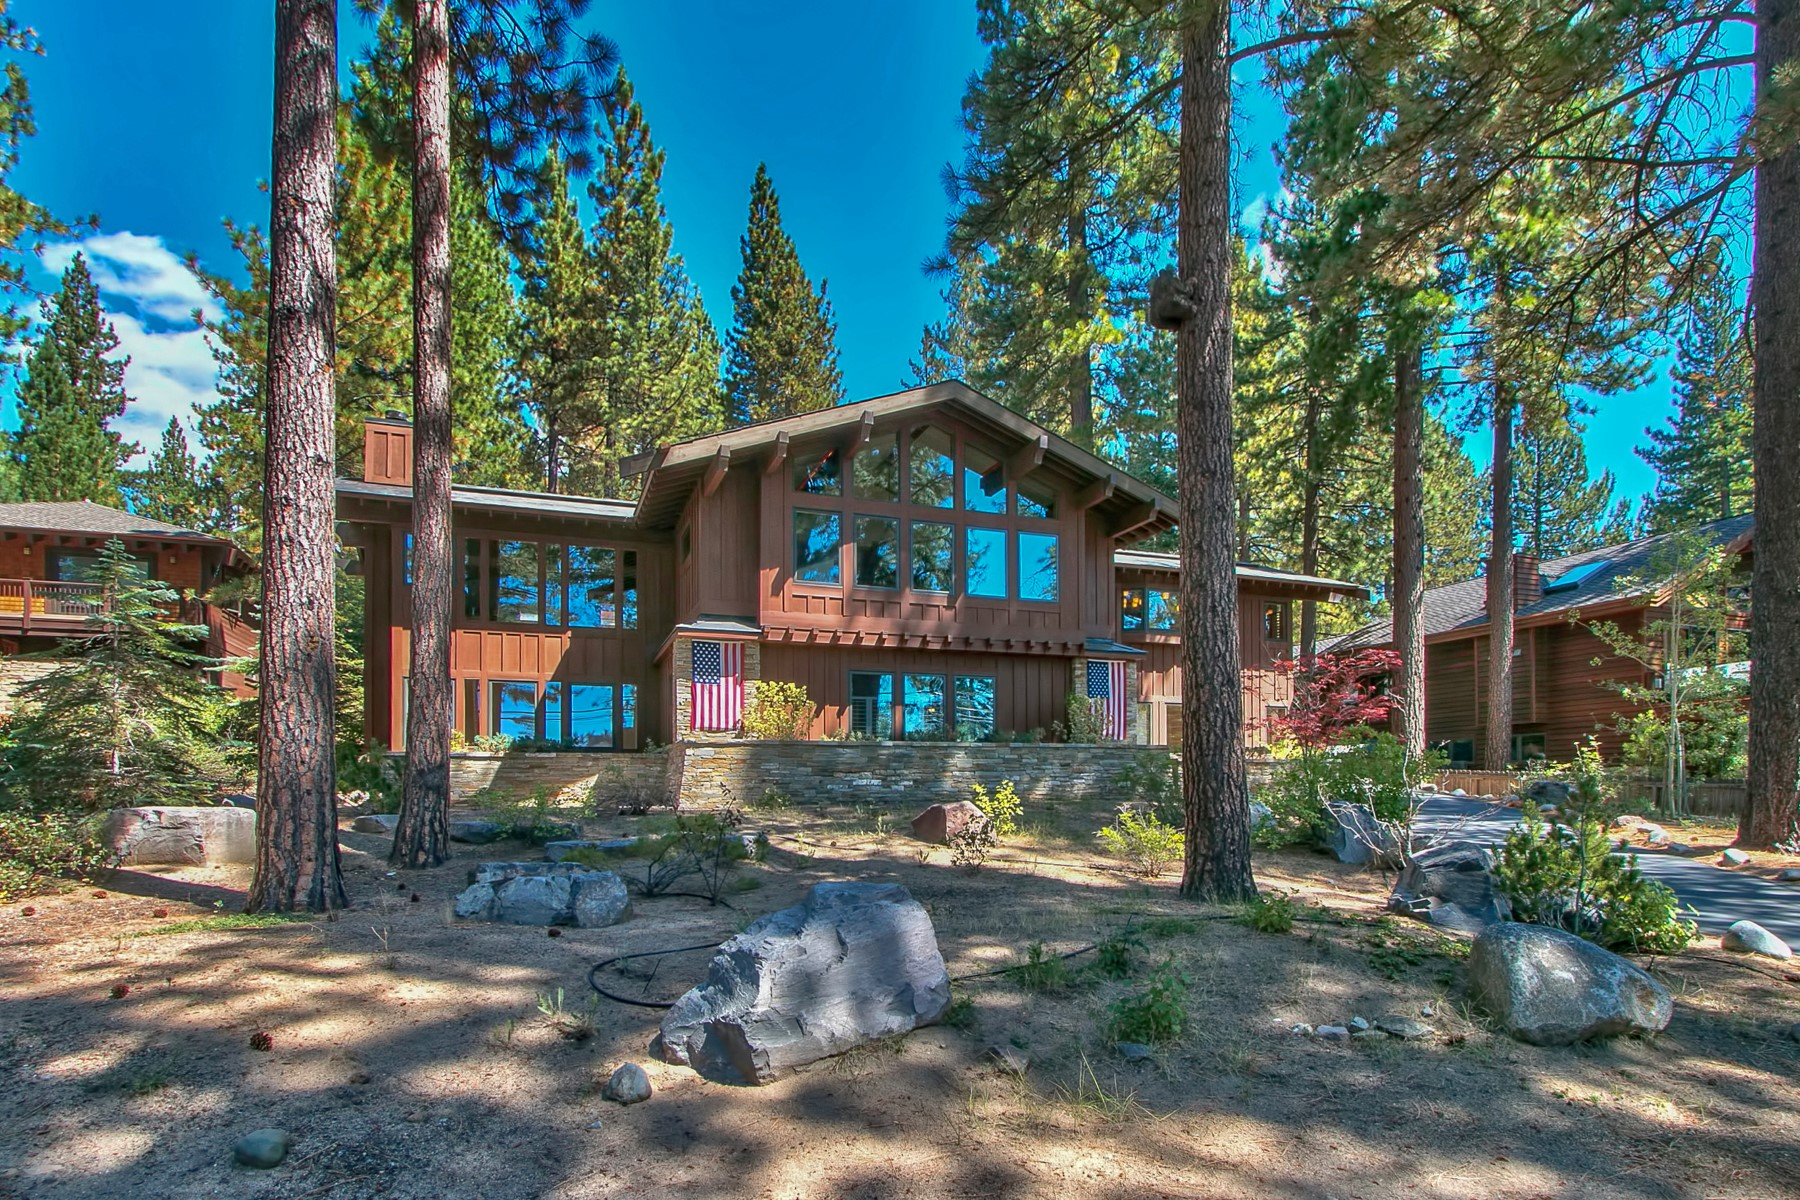 Single Family Home for Sale at 932 Lakeshore Incline Village, Nevada 89451 United States